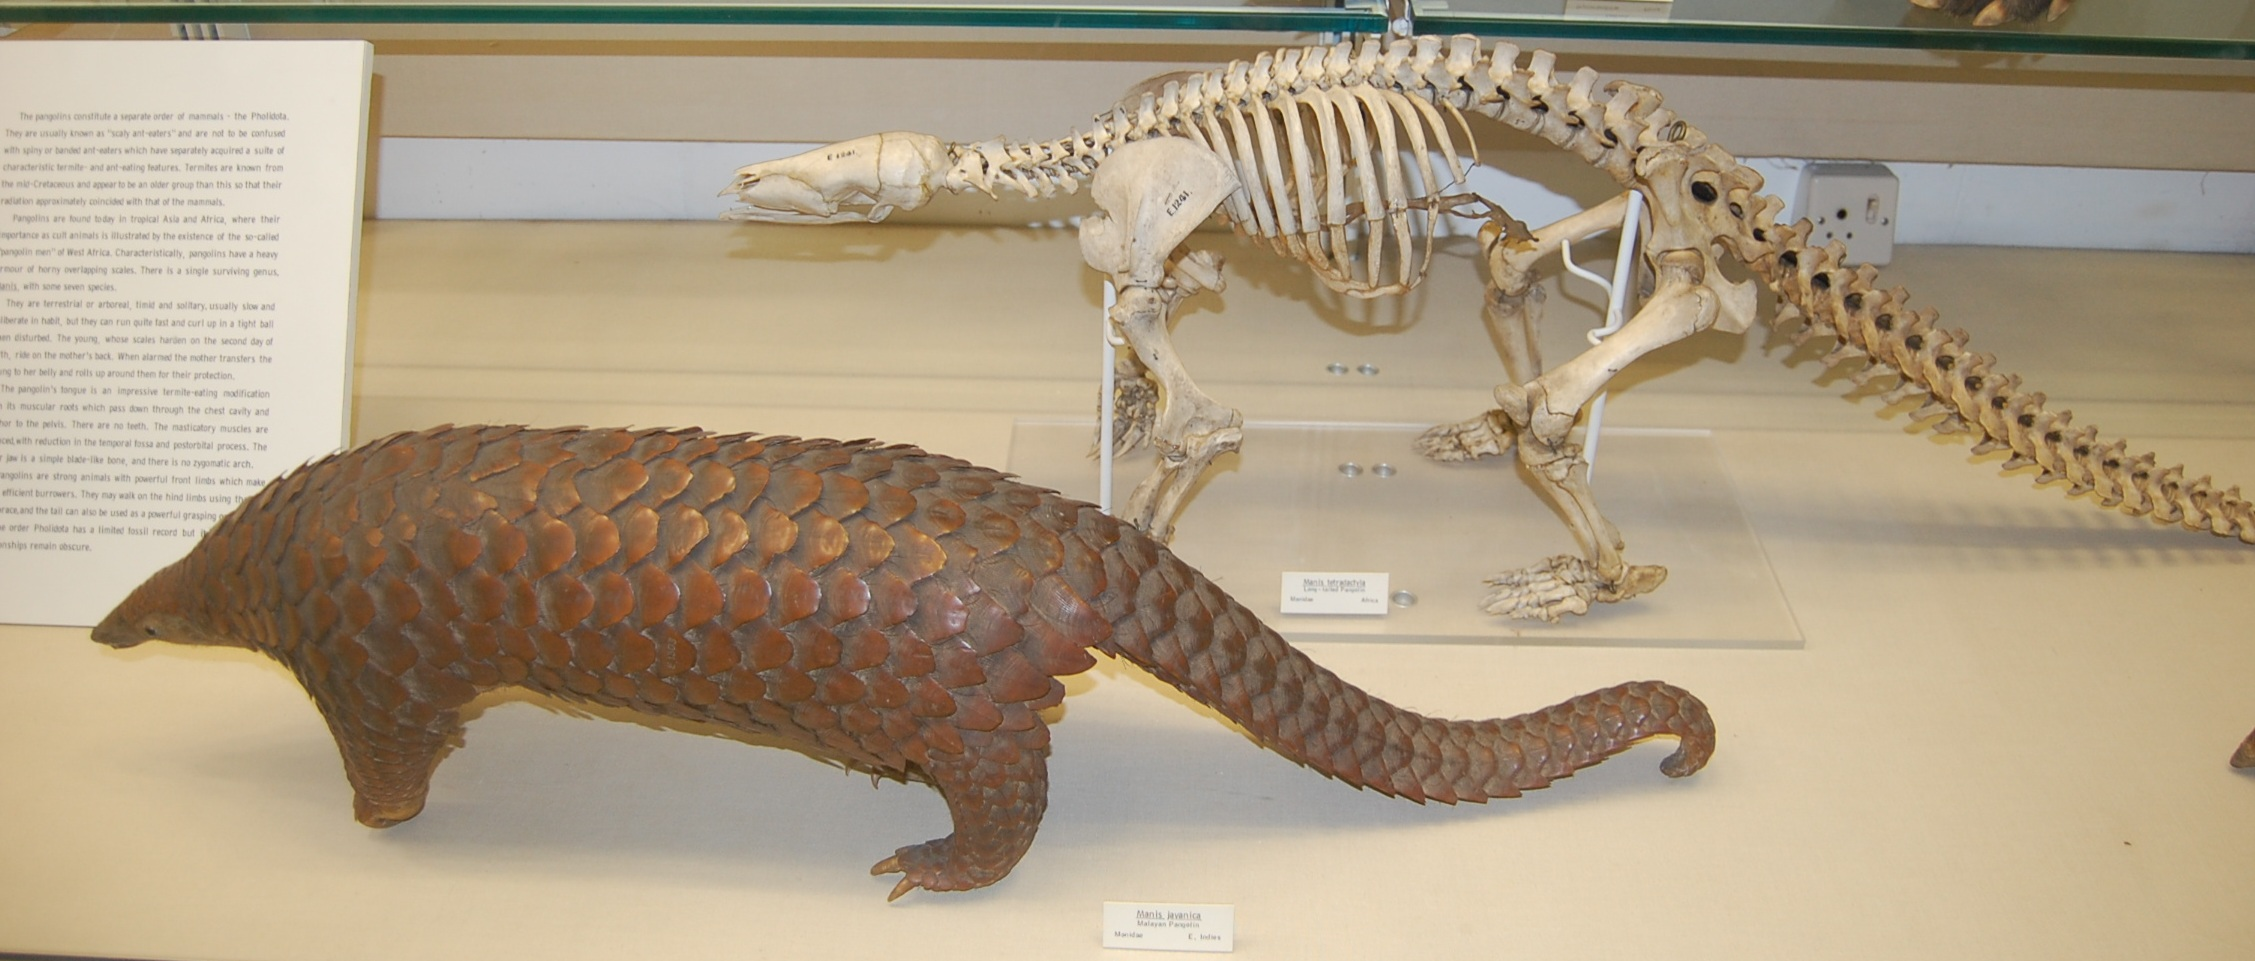 February 2013 Whats In Johns Freezer Back Gt Imgs For Snake Skeleton Diagram Pangolin Body And